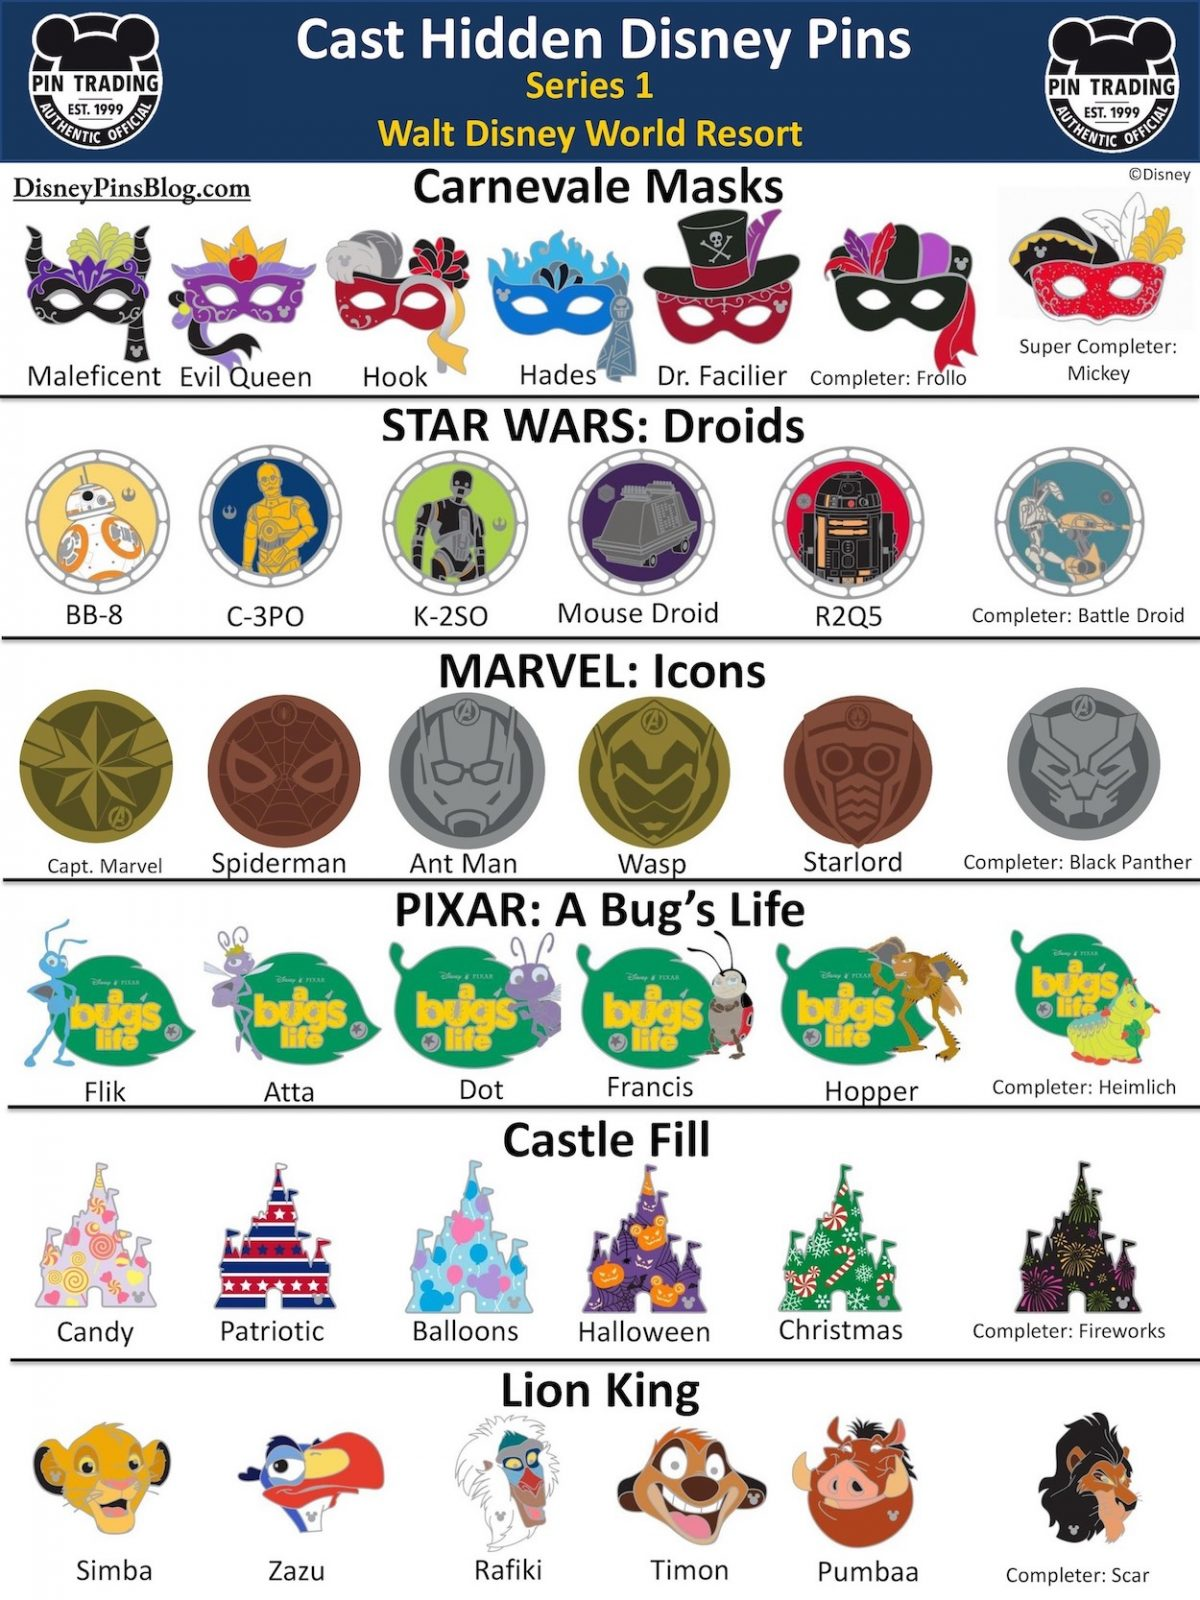 Walt Disney World Cast Hidden Disney Pins 2020 Series 1